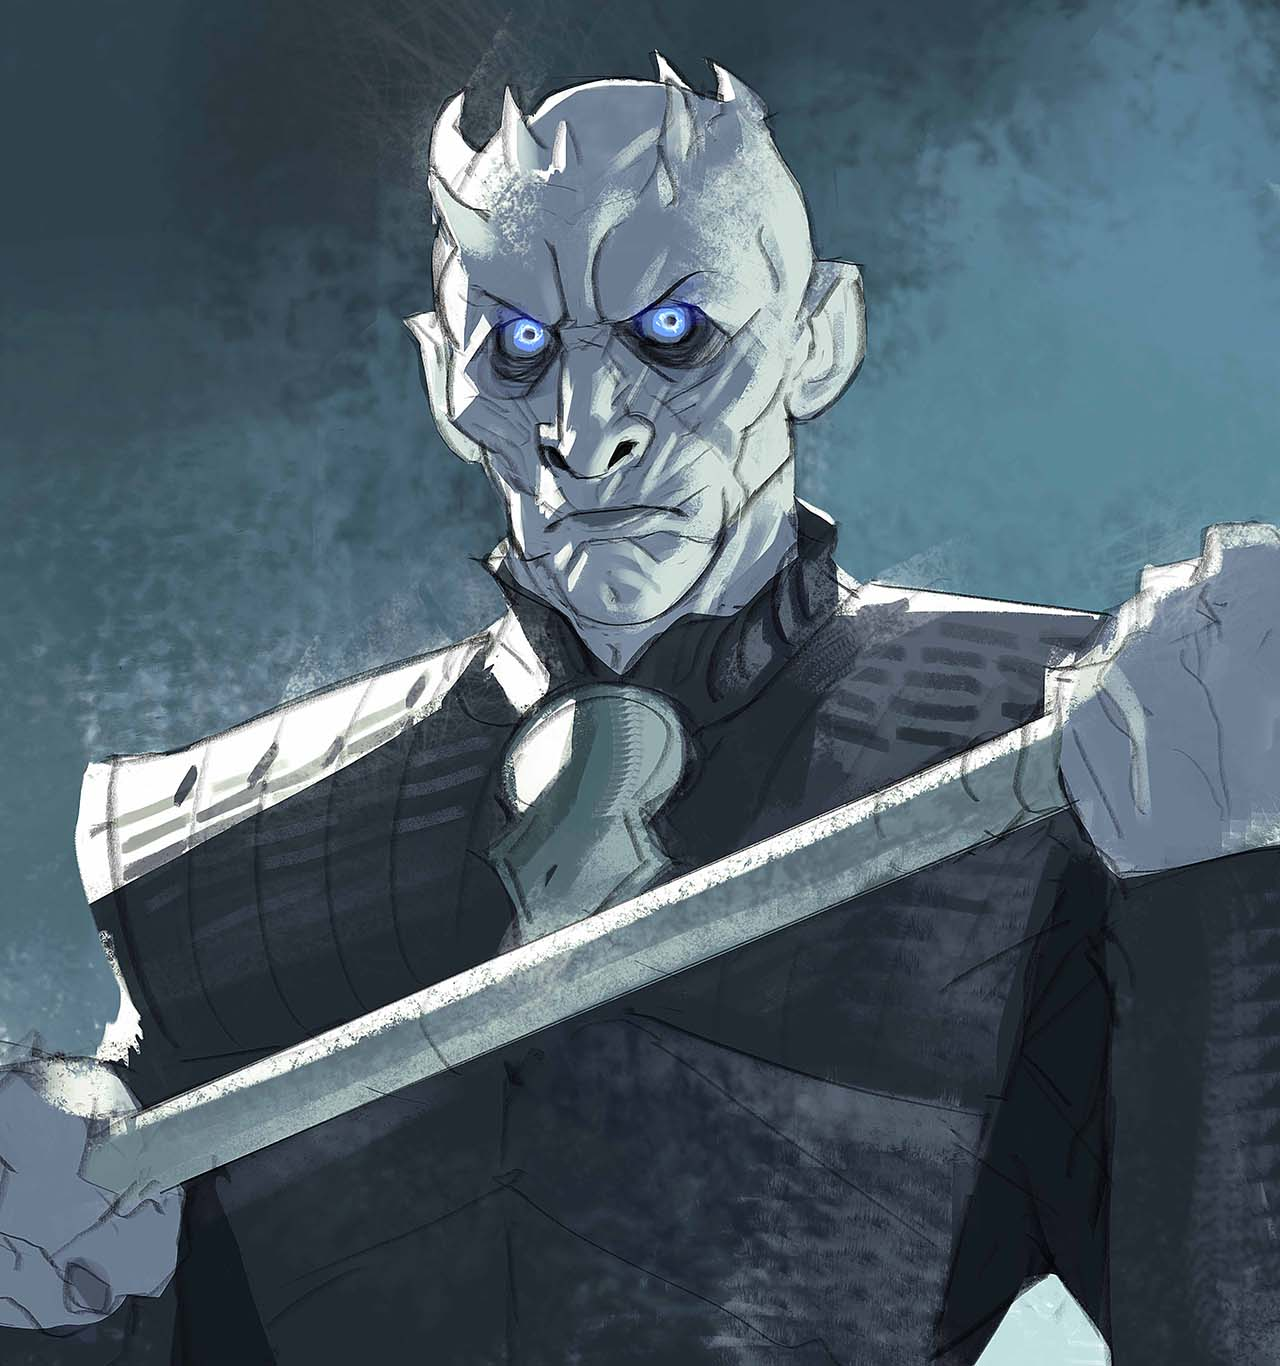 Artist Creates Unique Character Arts From Game Of Thrones – The Night King Character Art By Ramón Nuñez